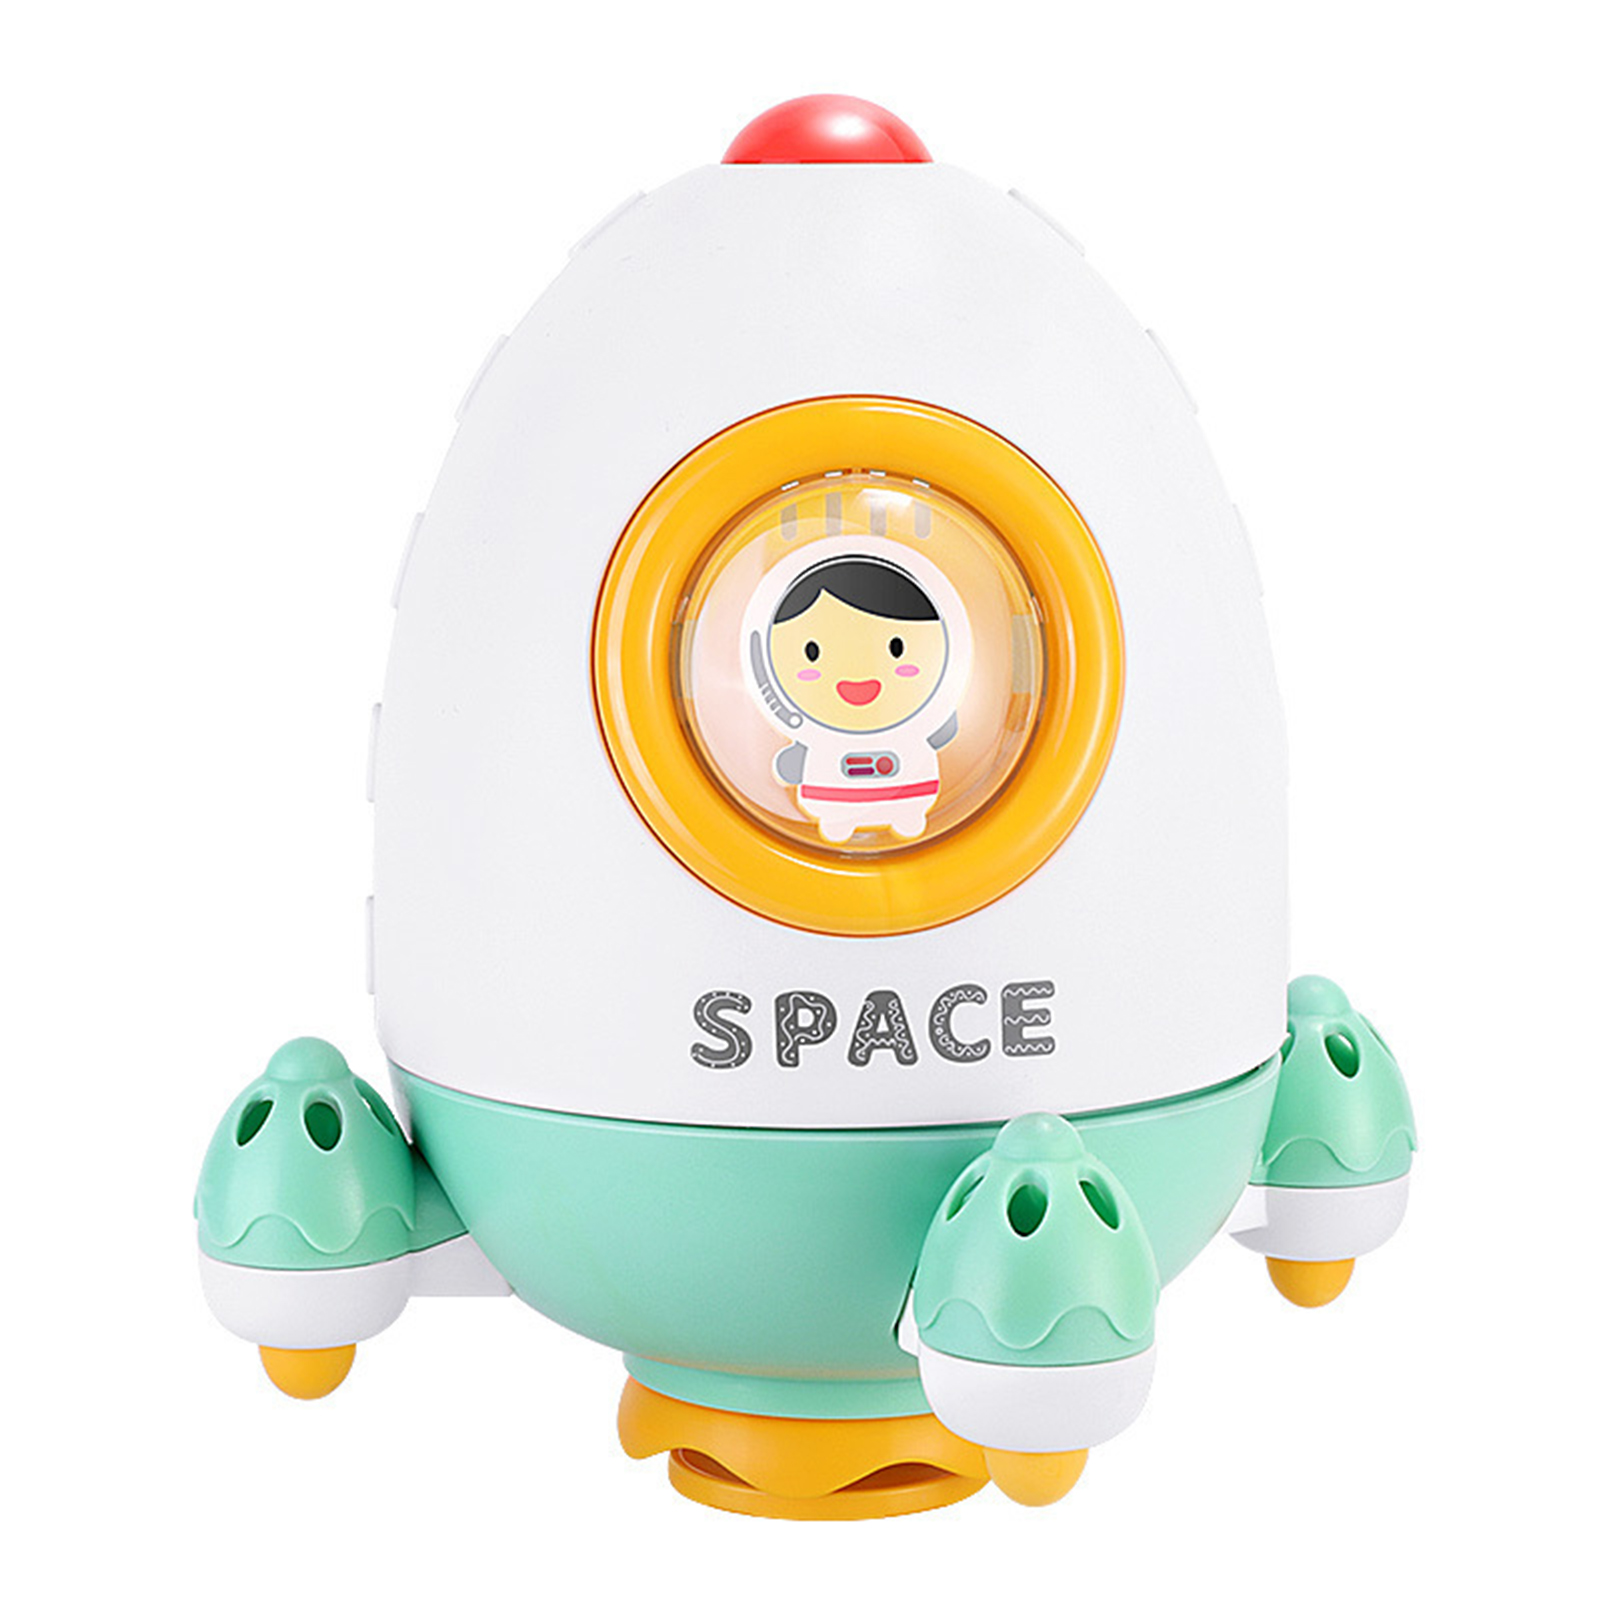 Baby Bath Toys Rocket Rotate Spray Water Sprinkler Toys Funny Educational Bathroom Shower Water Toy For Children Toddler